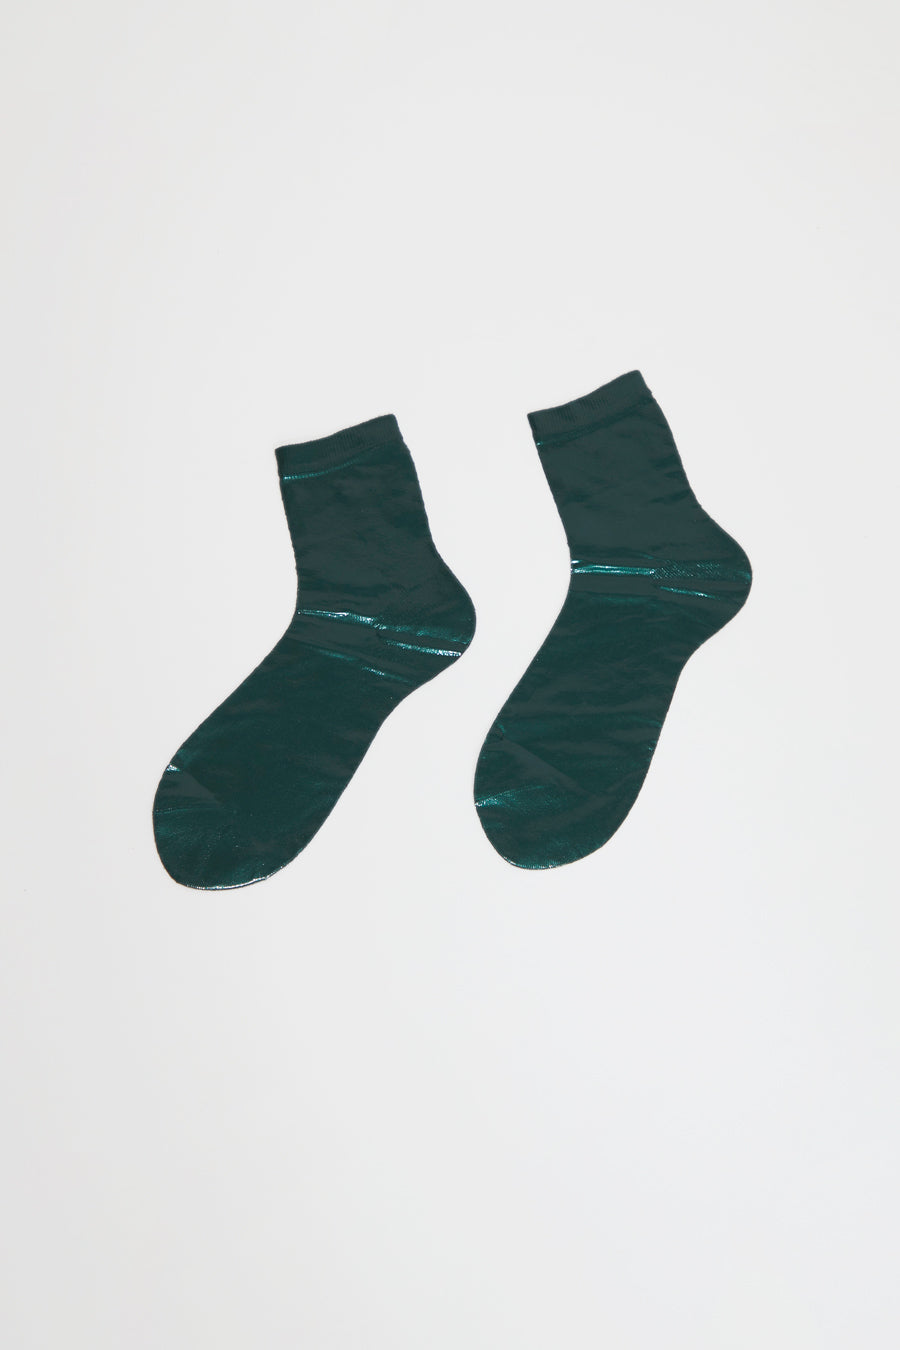 Maria La Rosa Laminated Sock in Forest